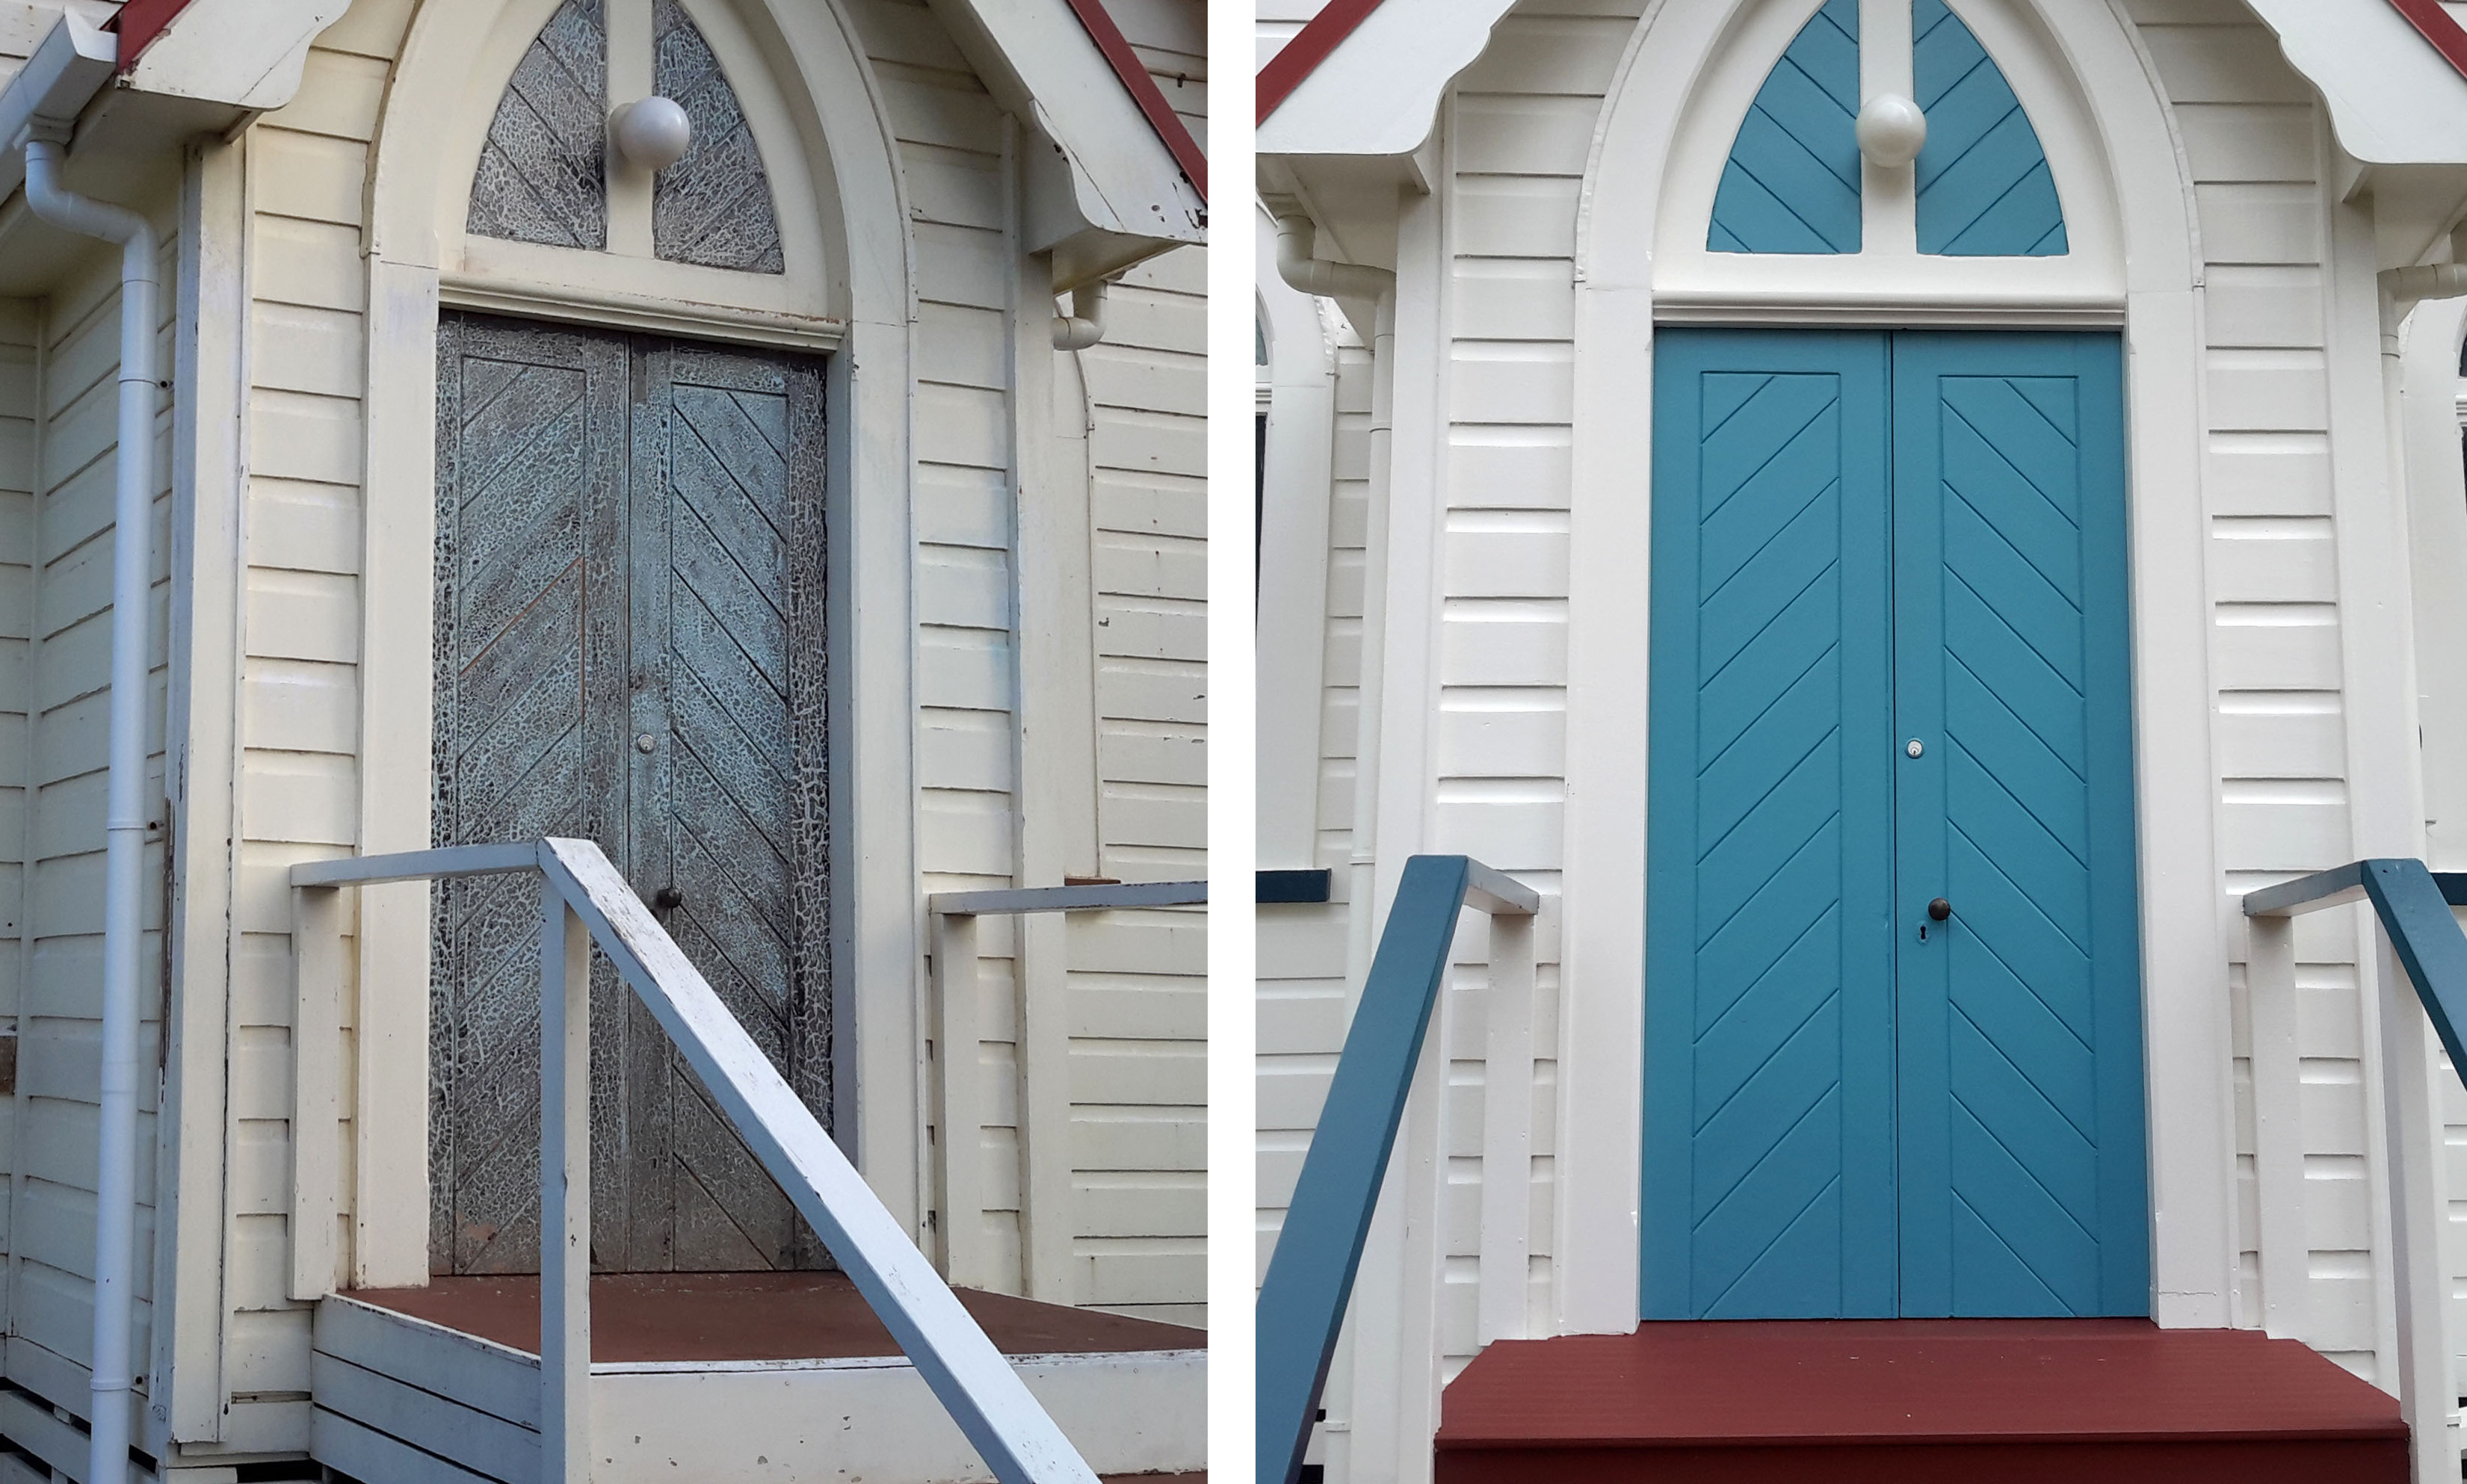 Before and after restoring paintwork on a Maungakaramea Church, up close of Church doors